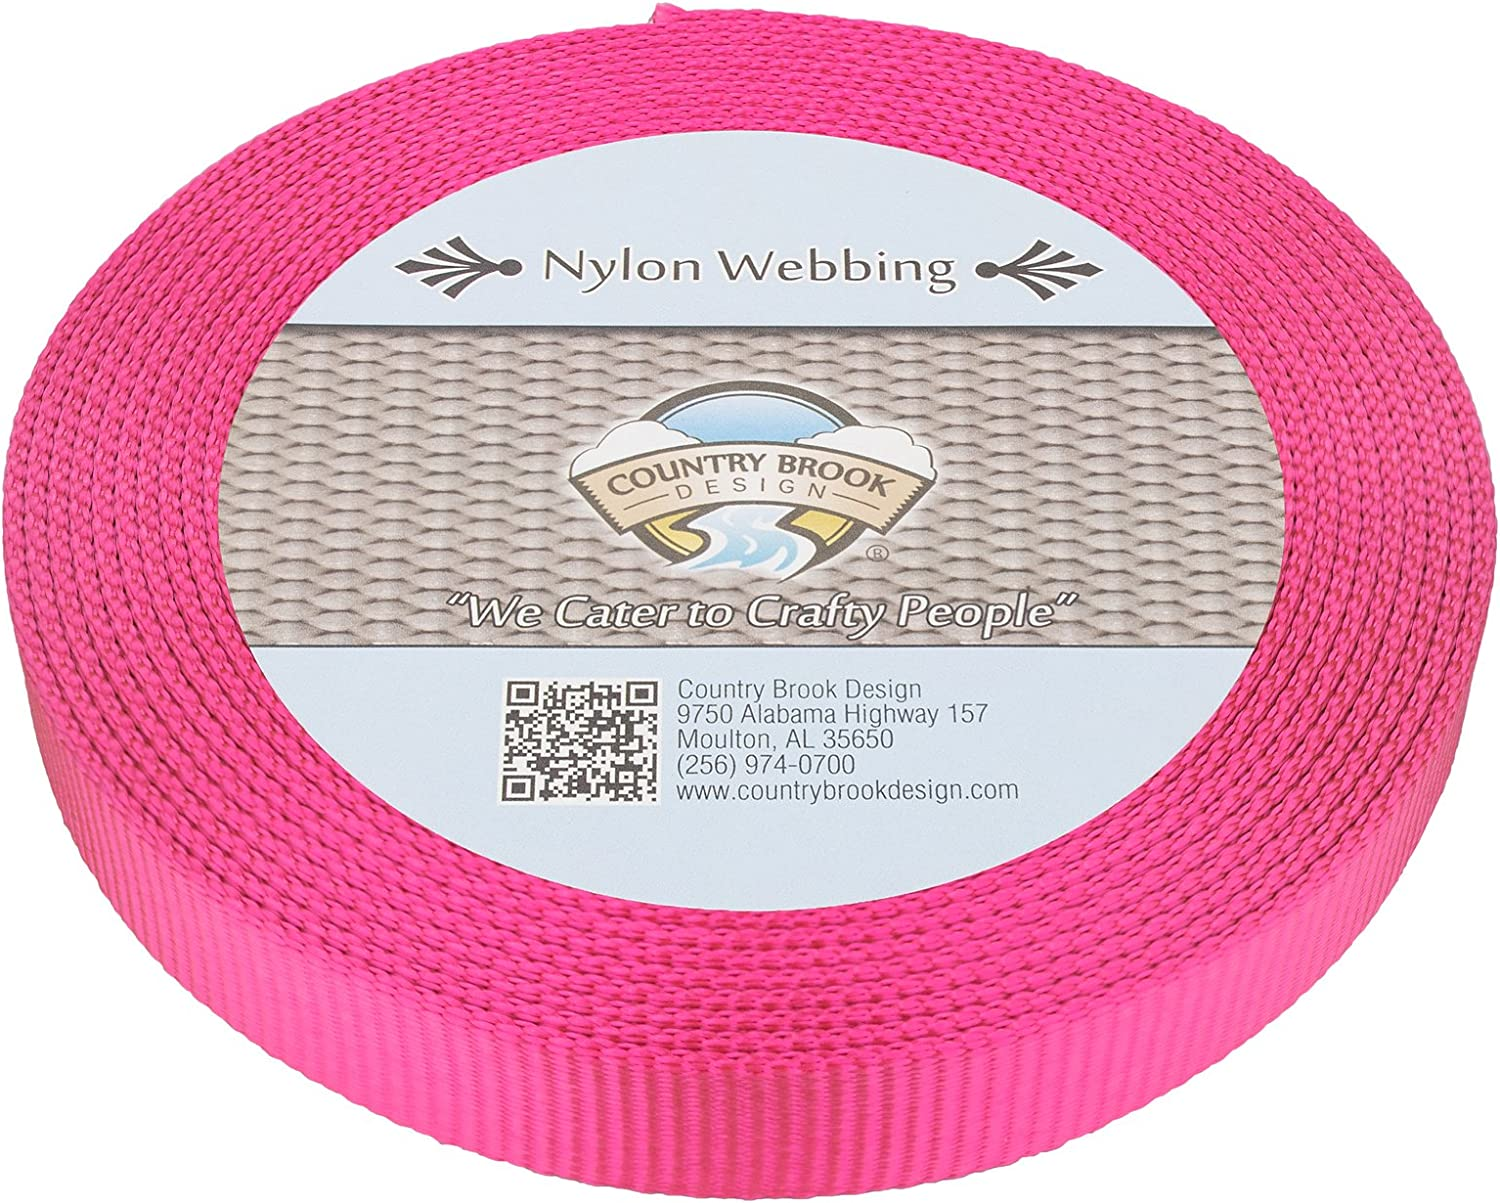 Country Brook Design® 1 Inch Pink Heavy Nylon Strap Webbing 50 Yards